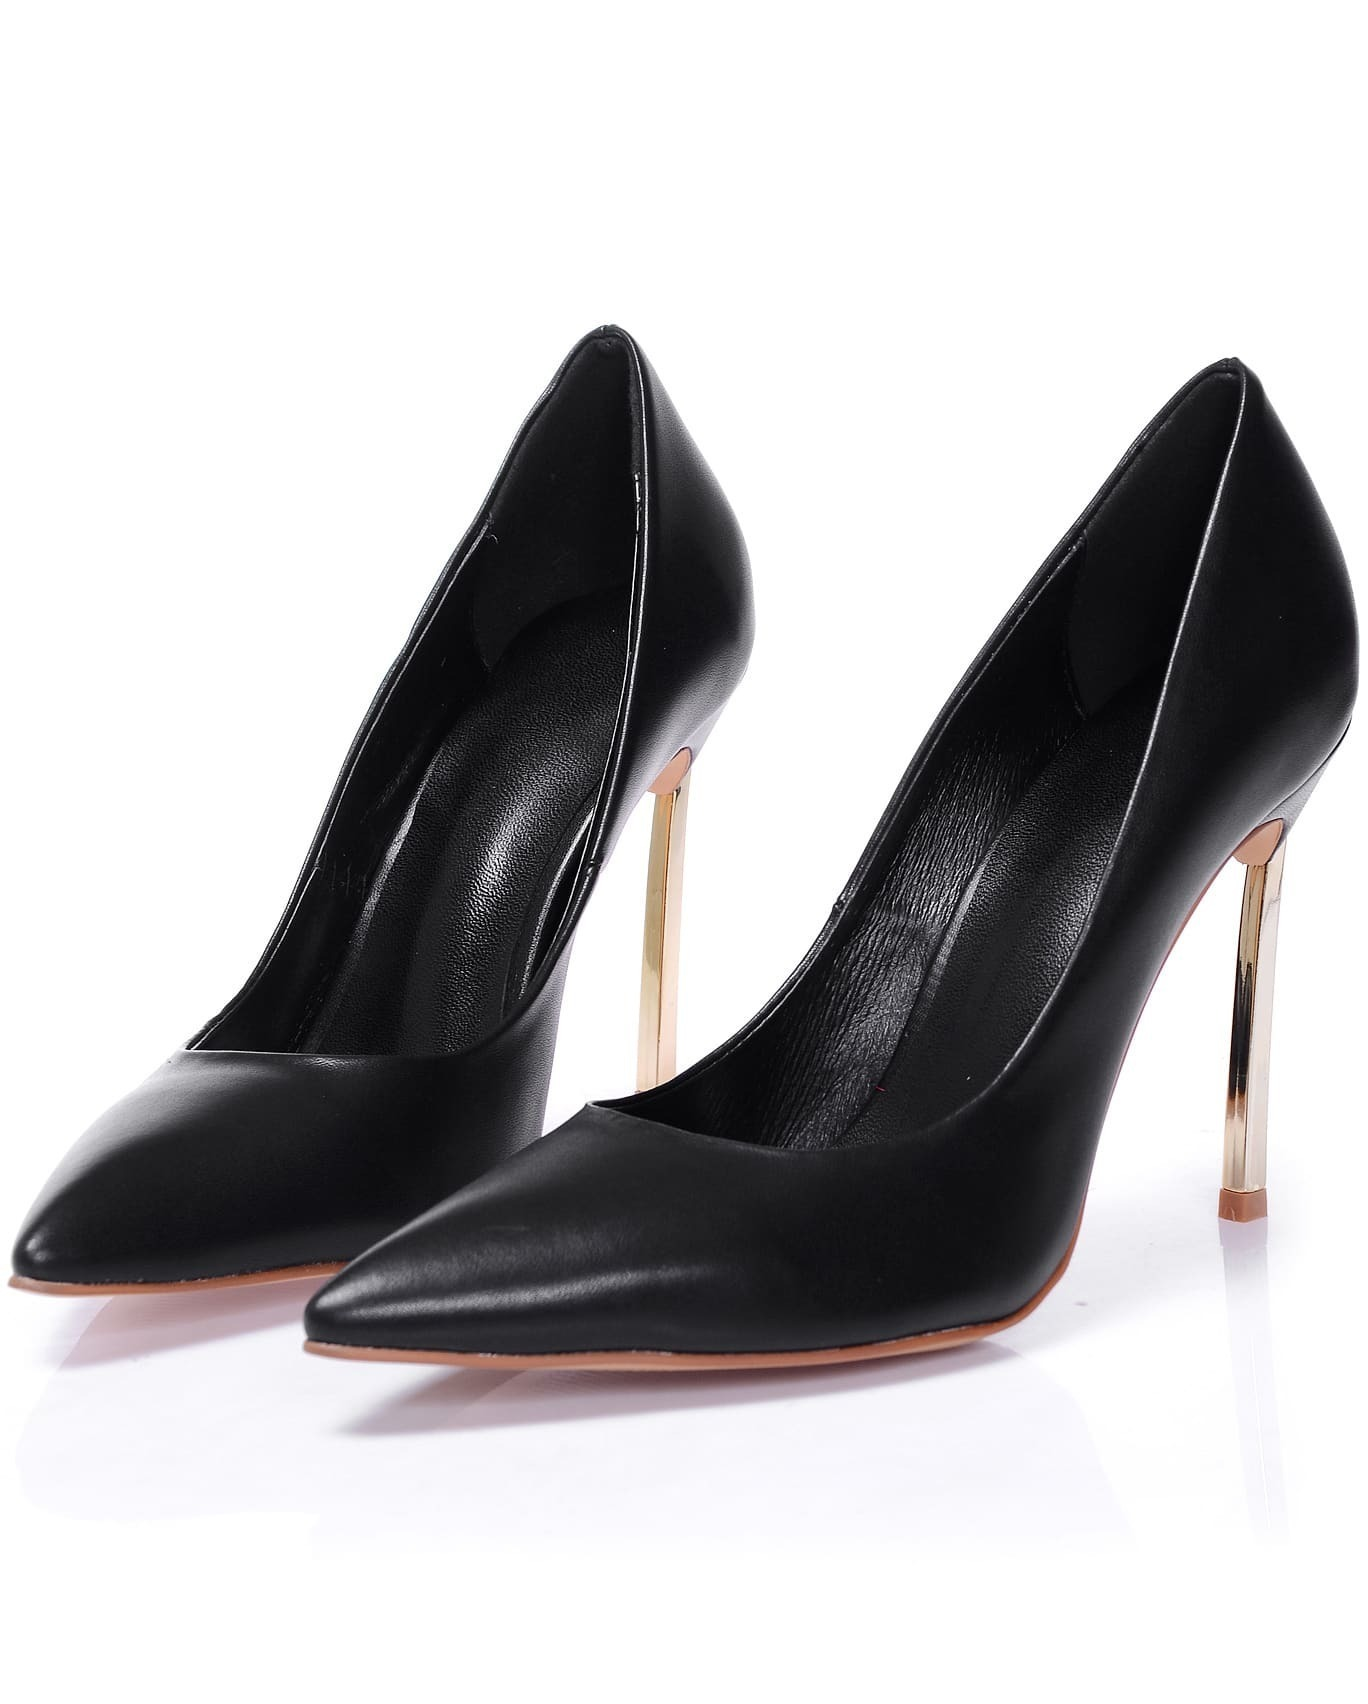 89bdc0aeb Black High Heel Stiletto Point Toe Shoes -SheIn(Sheinside)